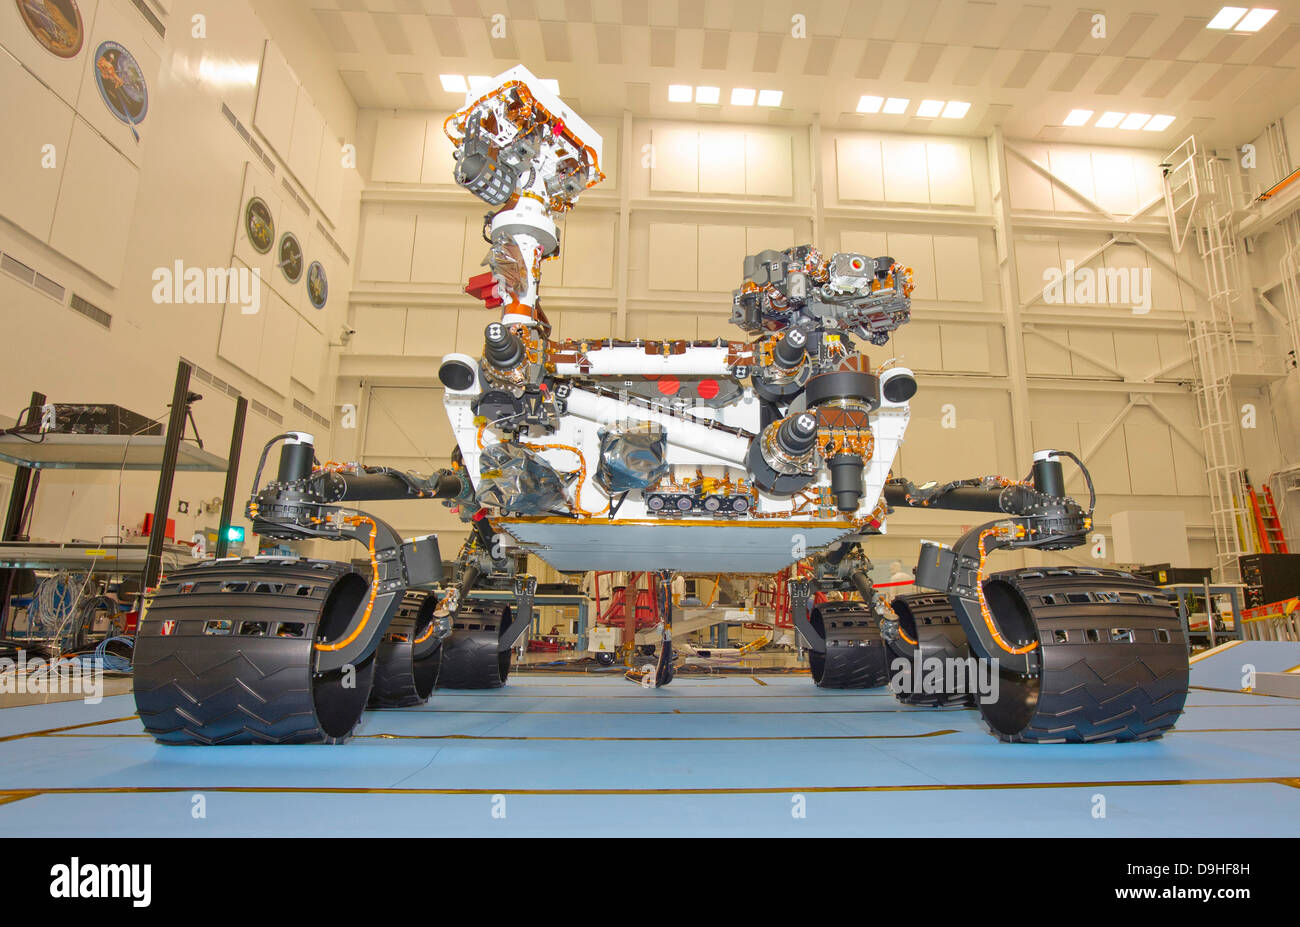 Mars Science Laboratory rover, Curiosity, during mobility testing. - Stock Image